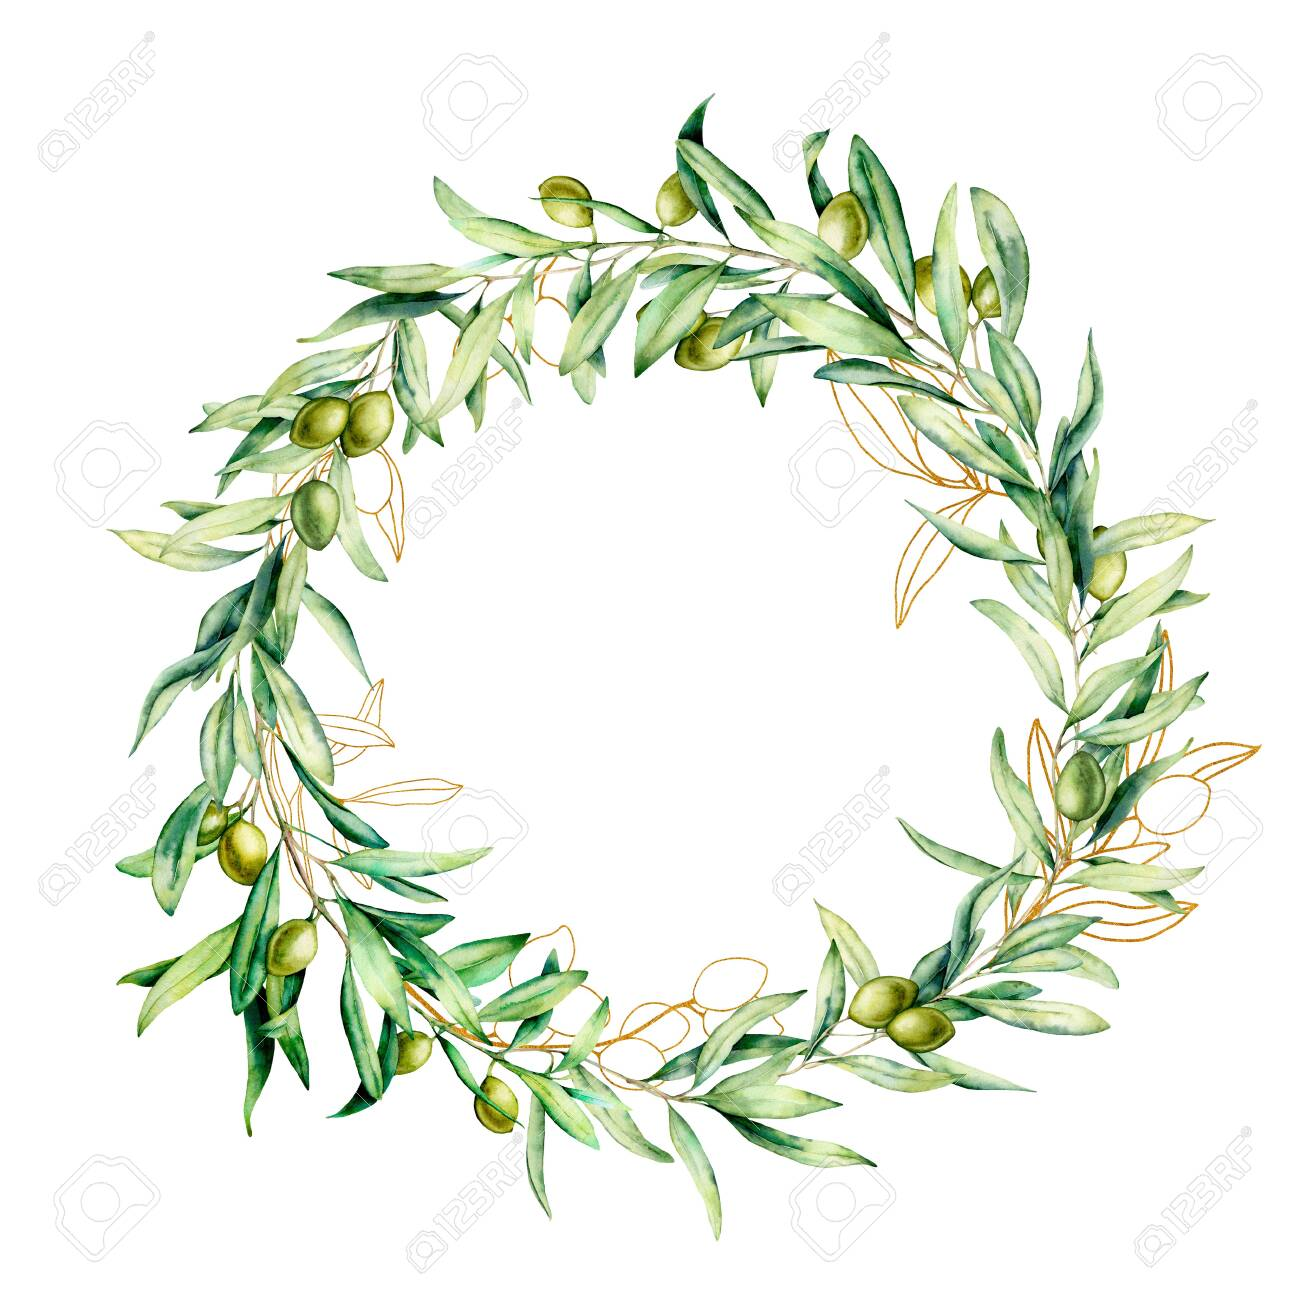 Watercolor wreath with green and golden olive berries. Hand painted floral border with olive fruit and tree branches with leaves isolated on white background. For design, print and fabric. - 121767307